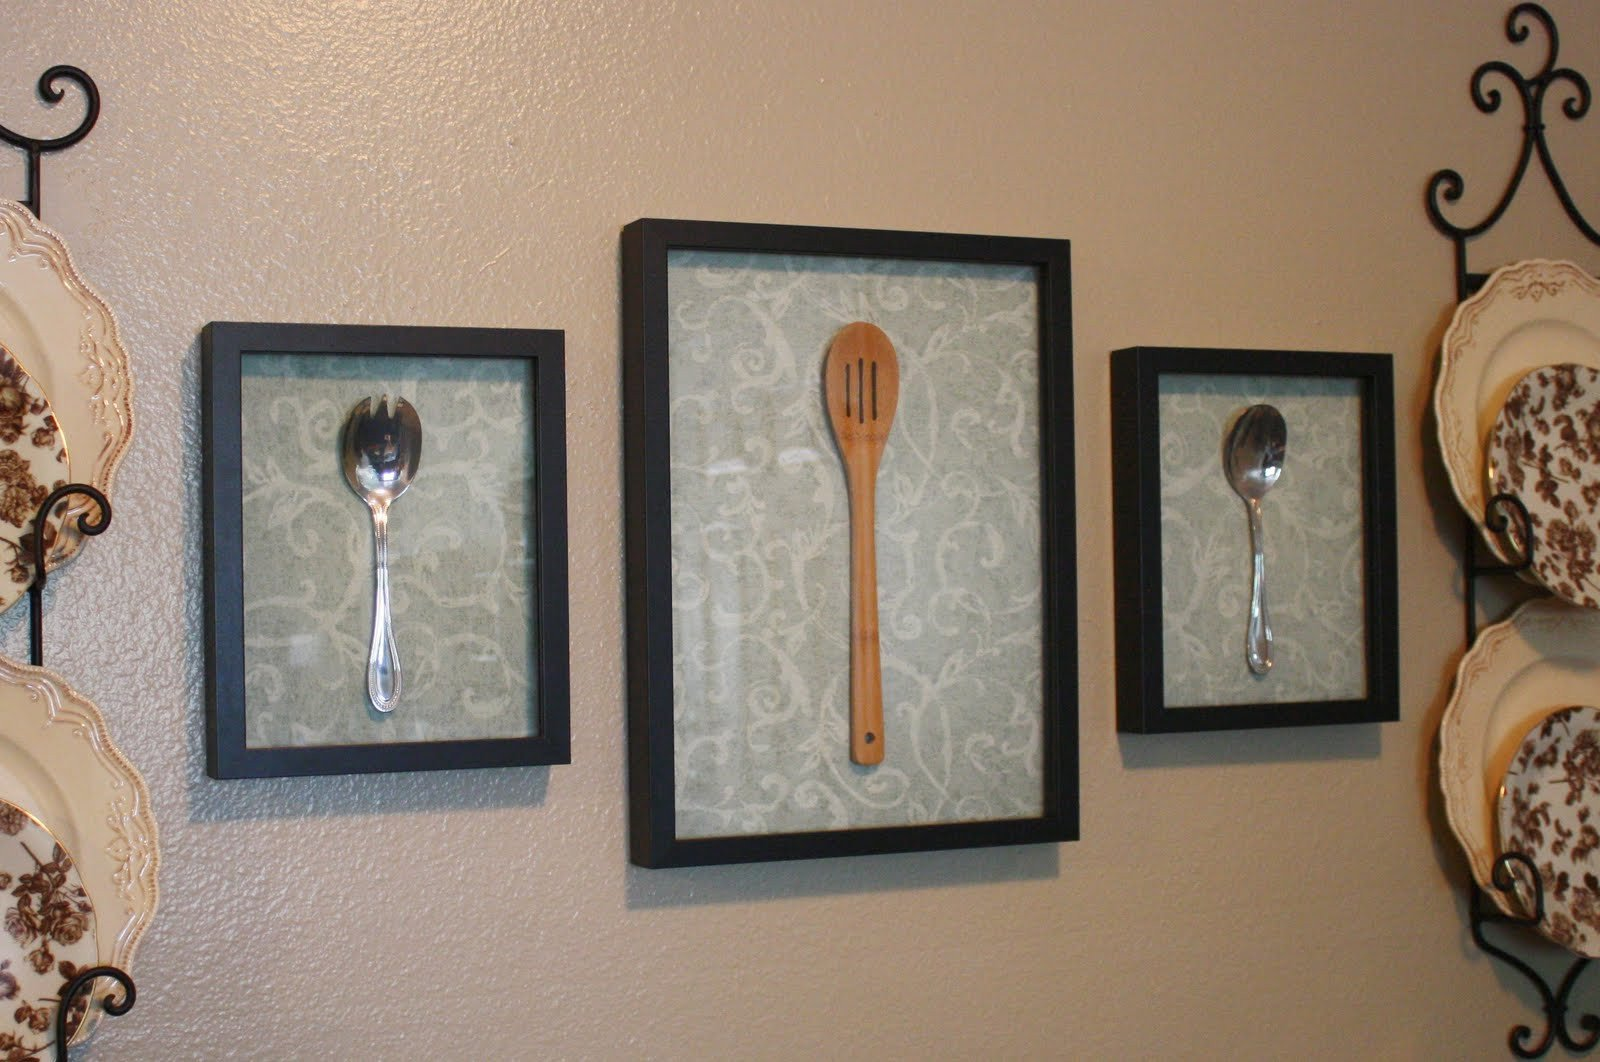 Kitchen Wall Decor Ideas Diy Unique Bayberry Creek Crafter Diy Wall Art for the Kitchen